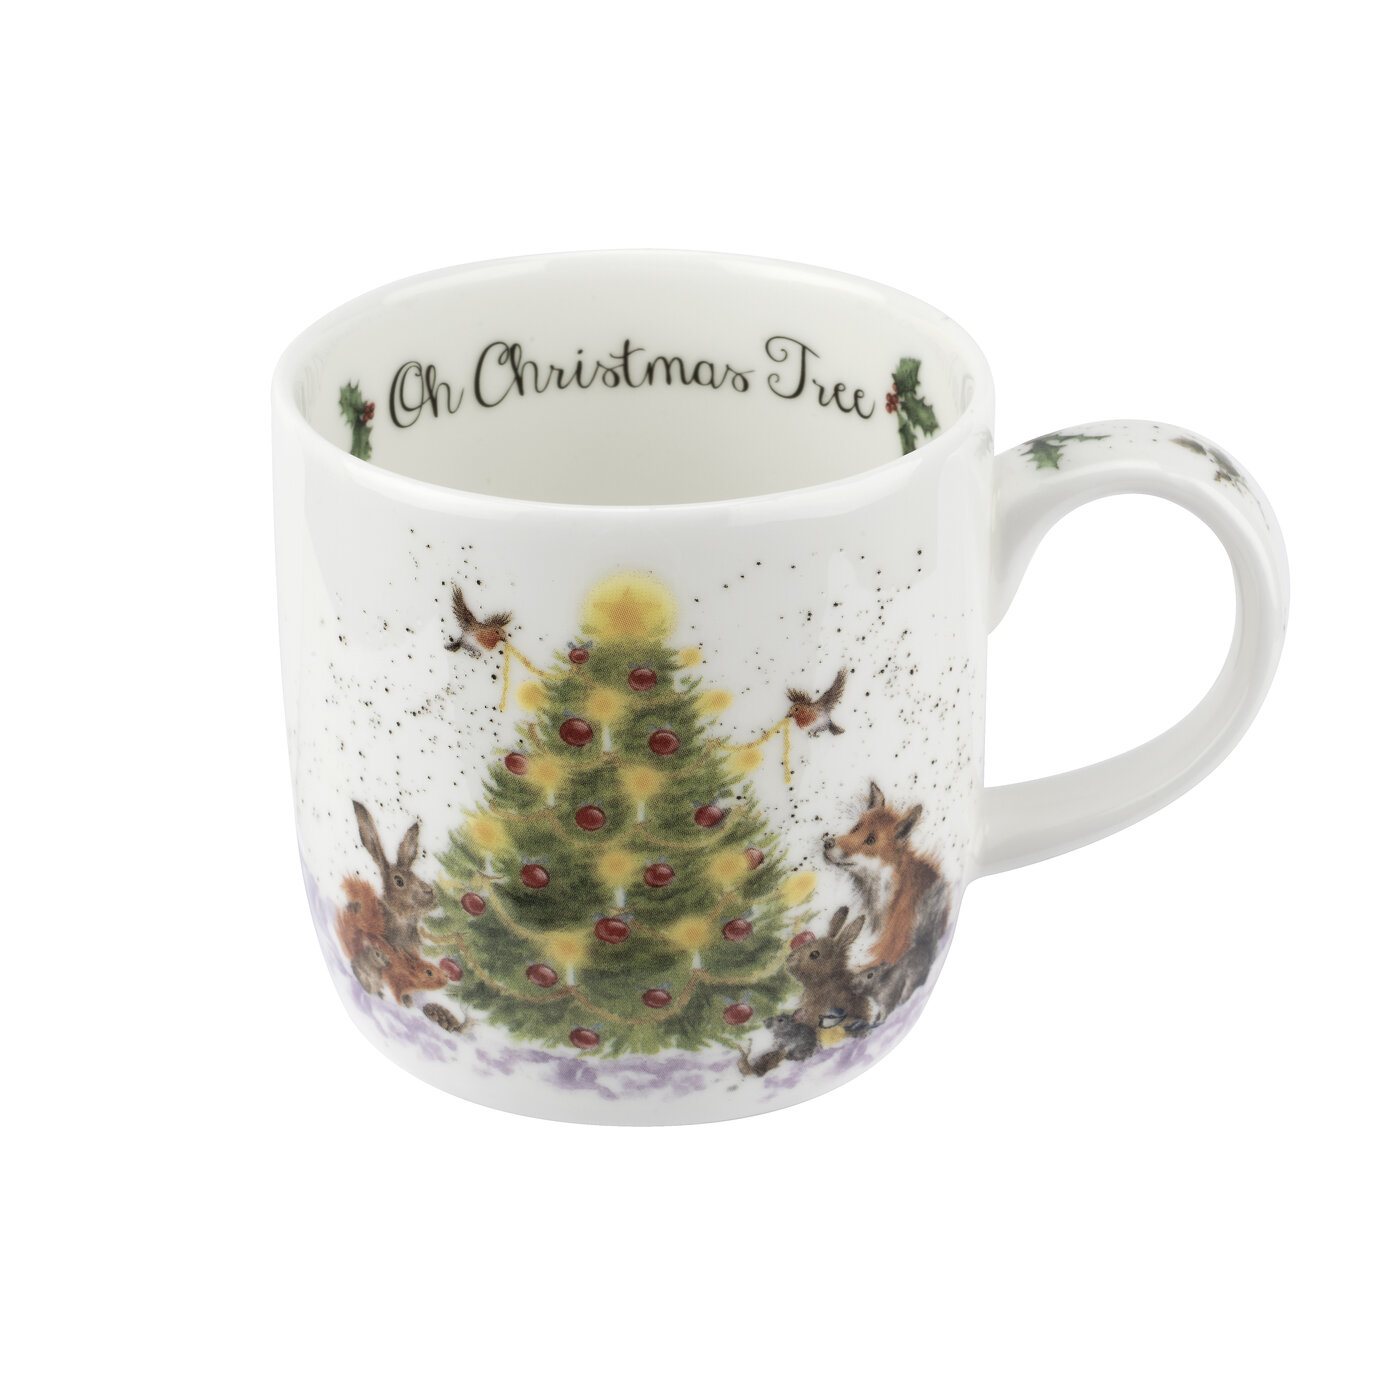 Royal Worcester Wrendale Designs 11 oz Mug & Coaster Set Oh Christmas Tree (Woodland Friends) image number 1